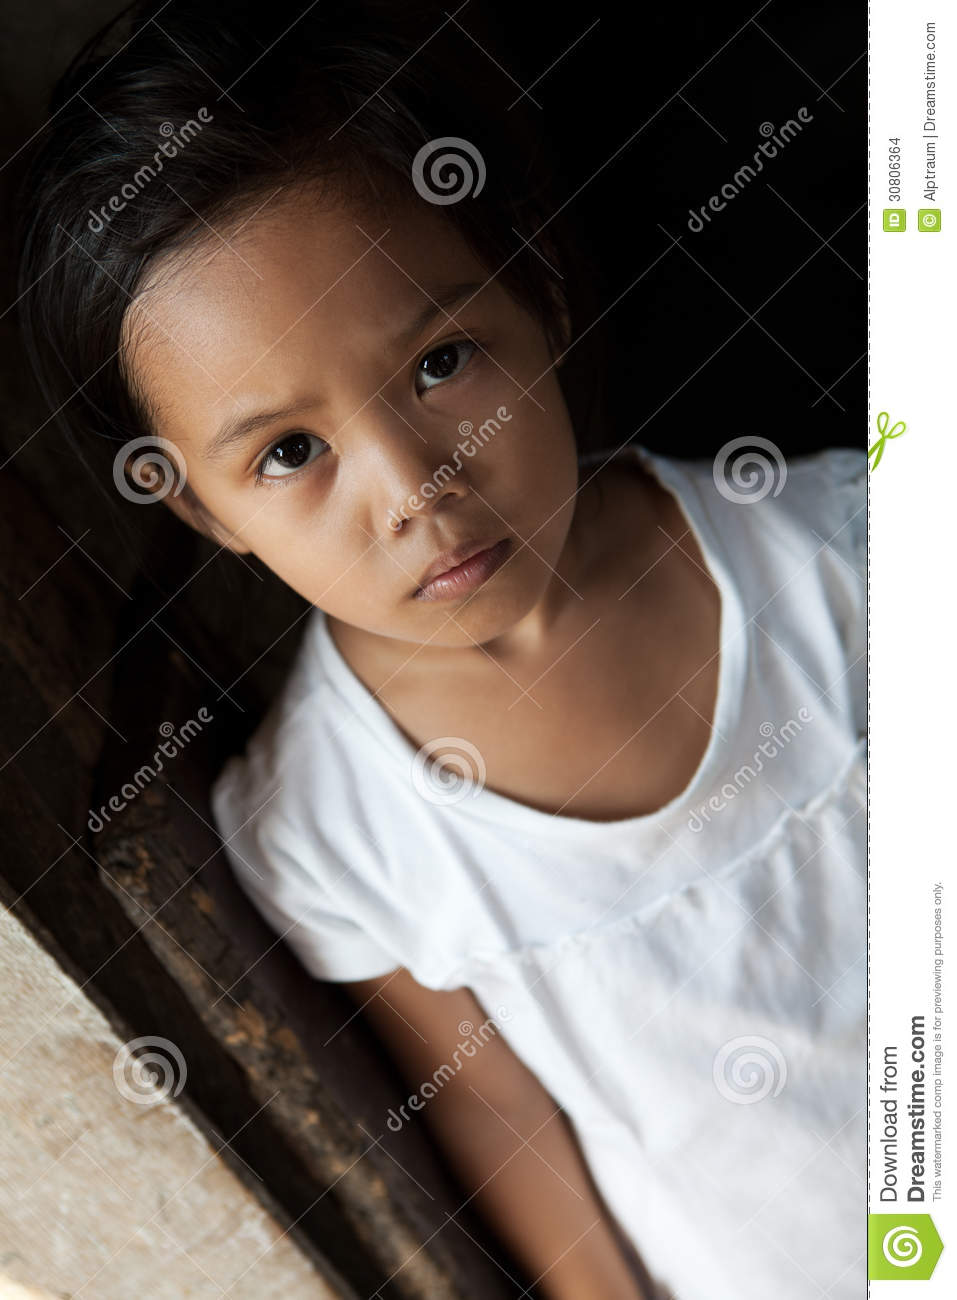 Asian Young Girl Portrait Stock Images - Image 30806364-5773